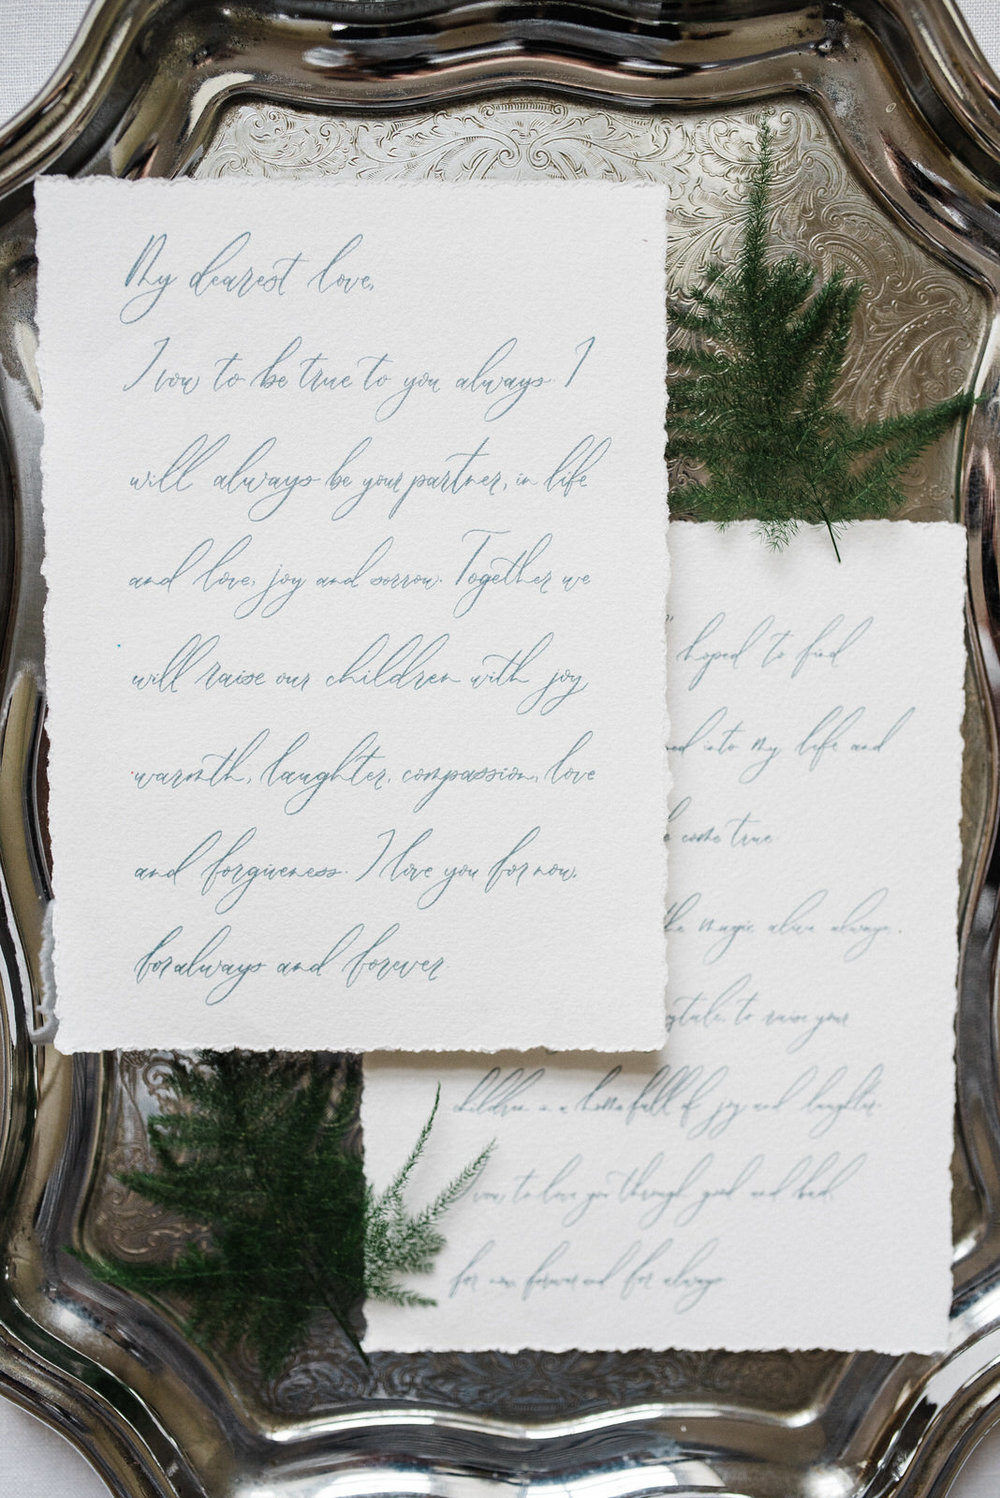 dunluce castle elopement in ireland in sage and white minimalistic white and green stationery design wedding stationery, wedding vows-1.jpg